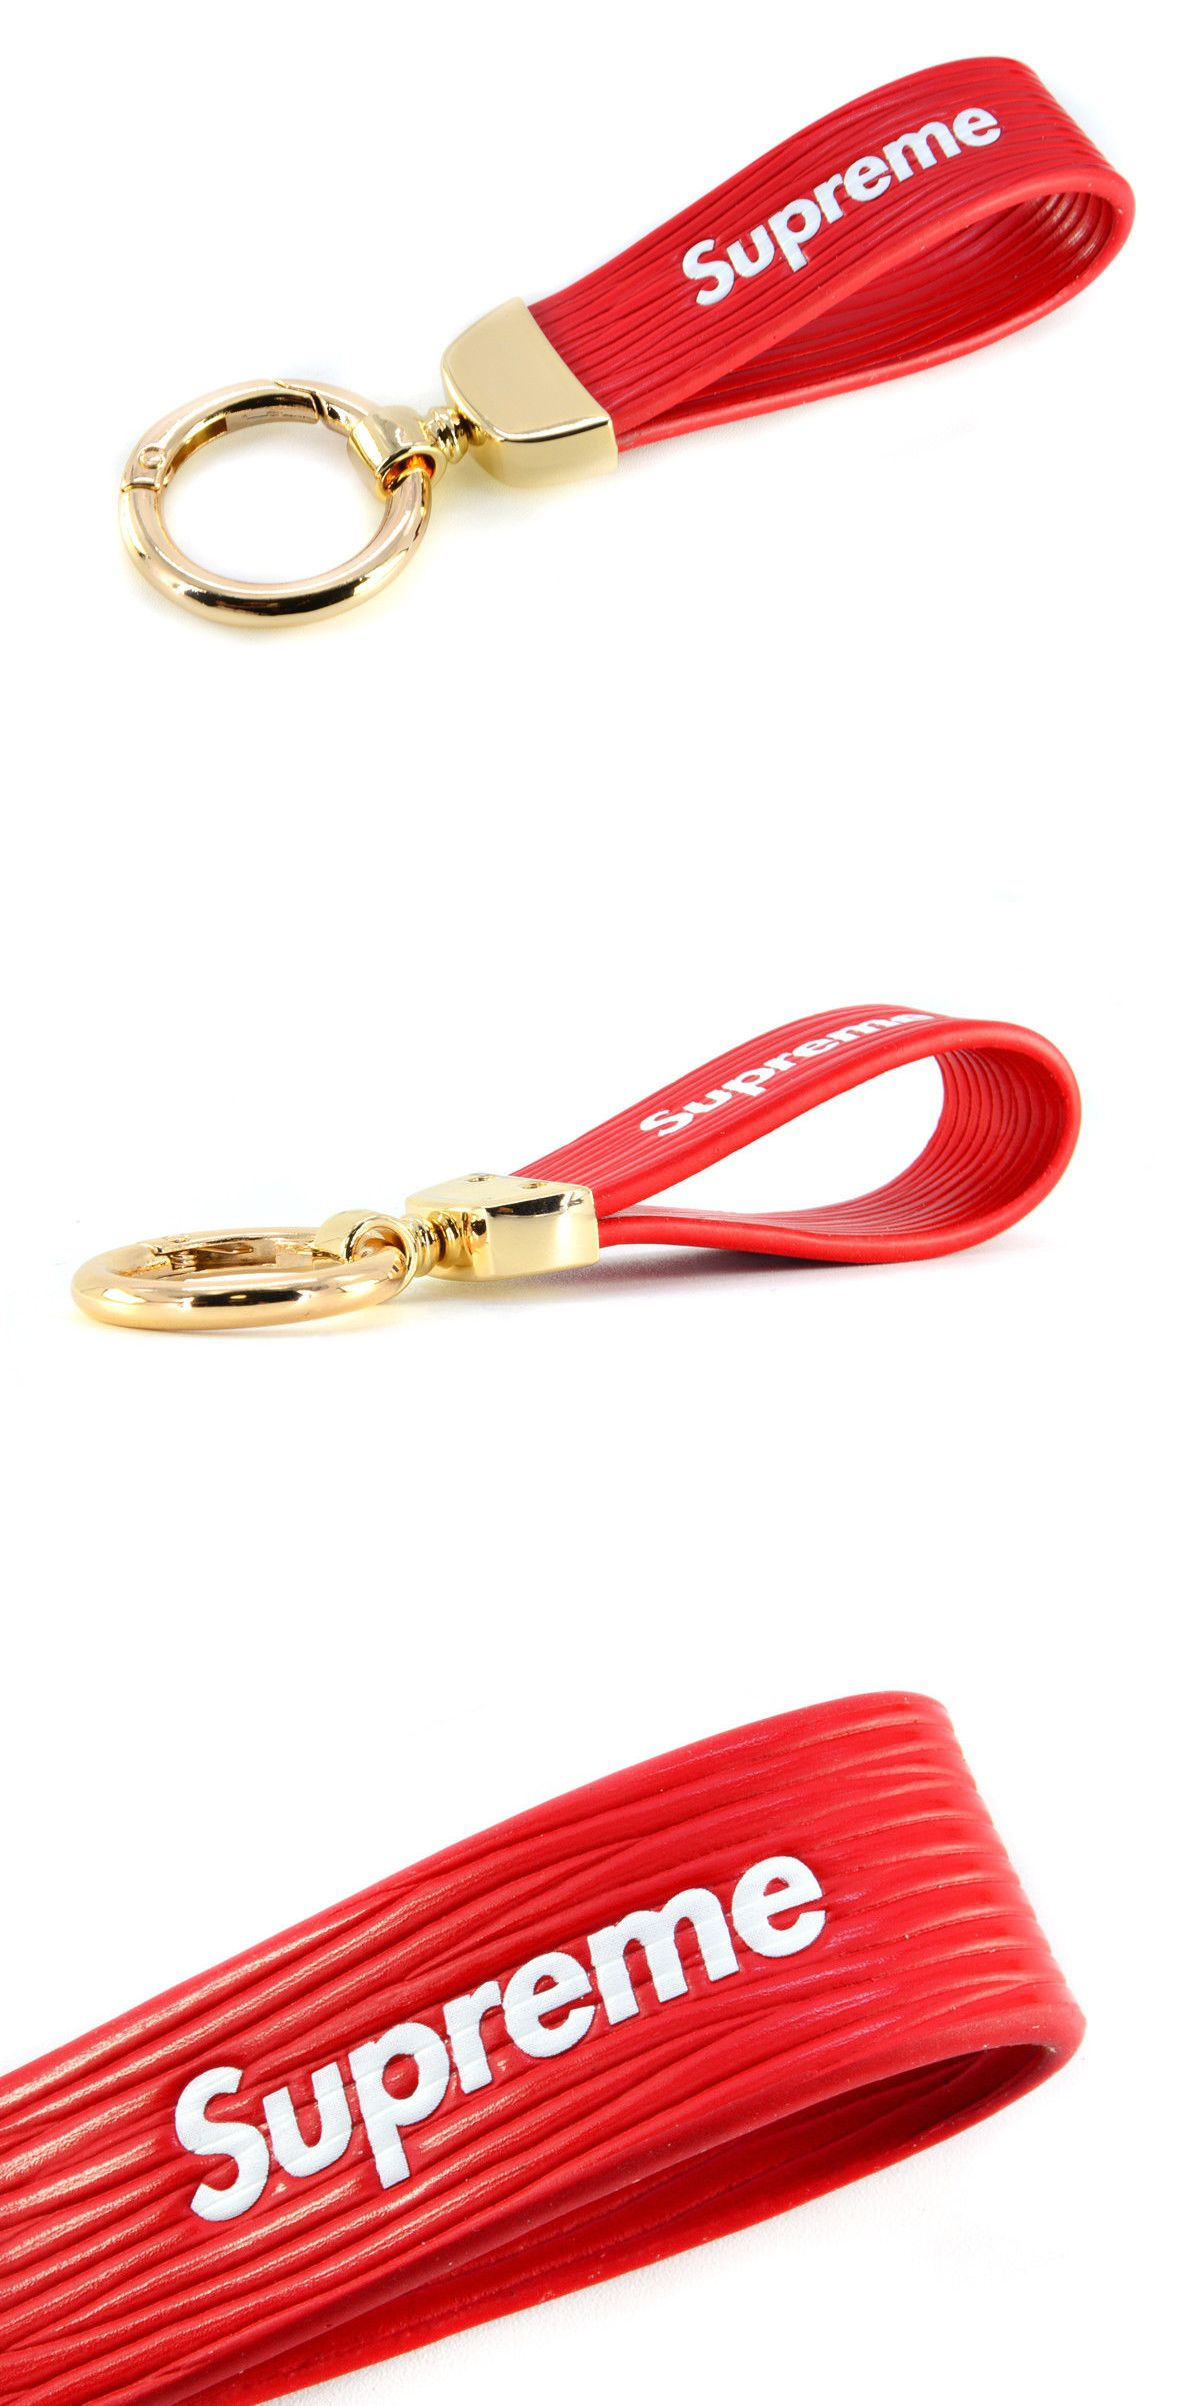 ea9a84d0f Key Chains 169280  Brand New Supreme Red Metal Leather Key Chain Ring  Keyfob Car Keyring Keychain -  BUY IT NOW ONLY   15 on  eBay  chains  brand   supreme ...